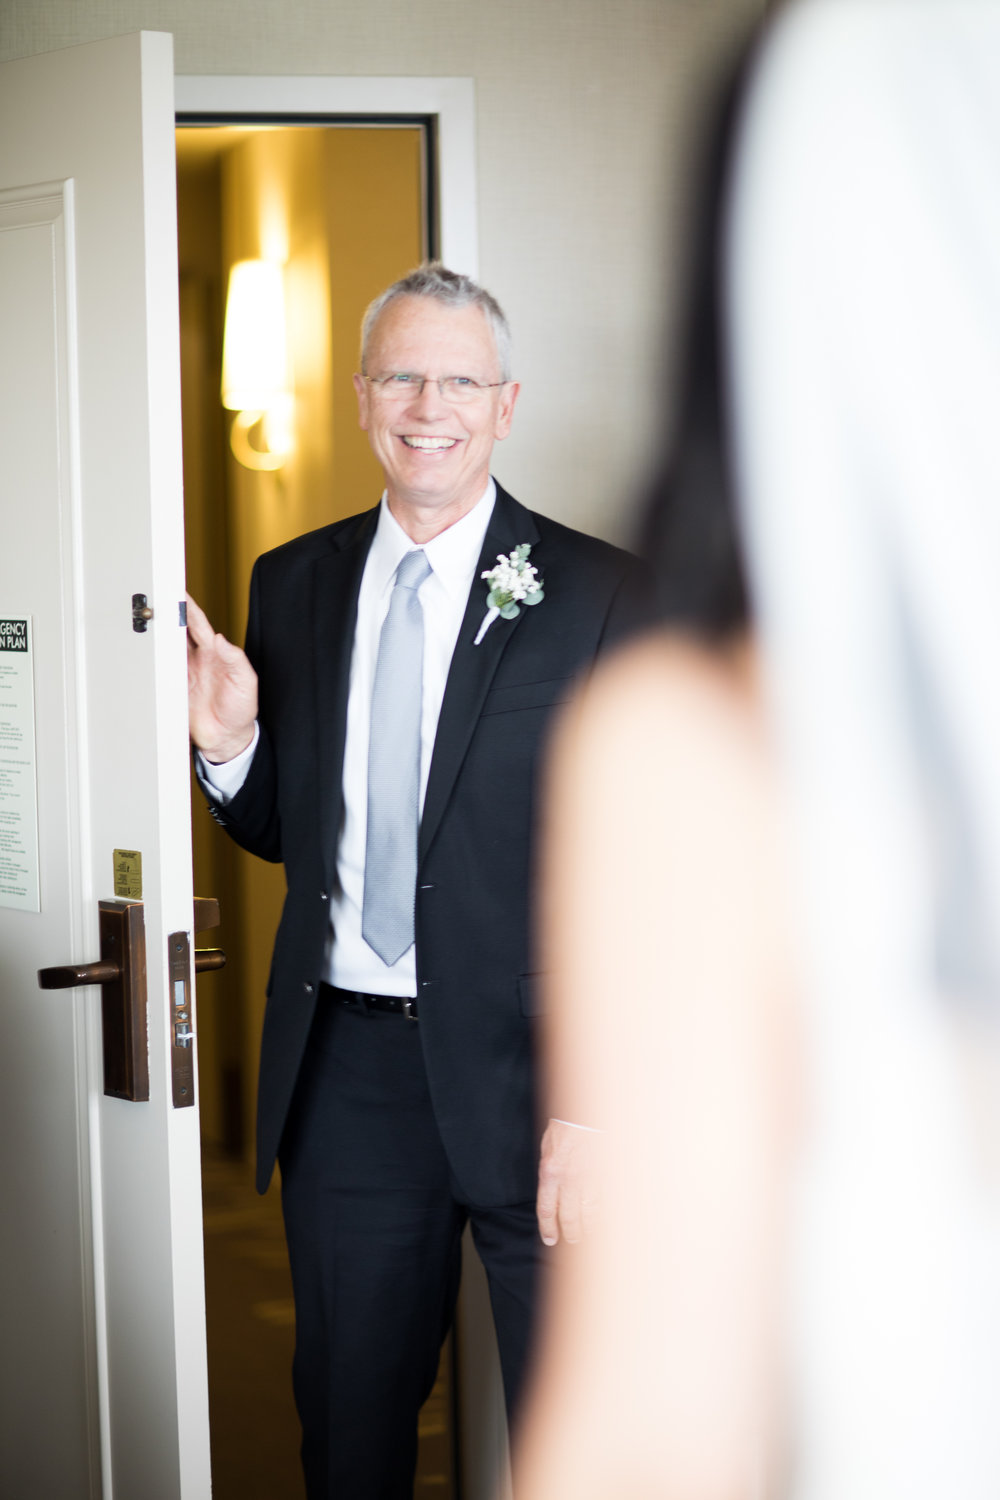 Dad Seeing Daughter for the First Time on Her Wedding Day